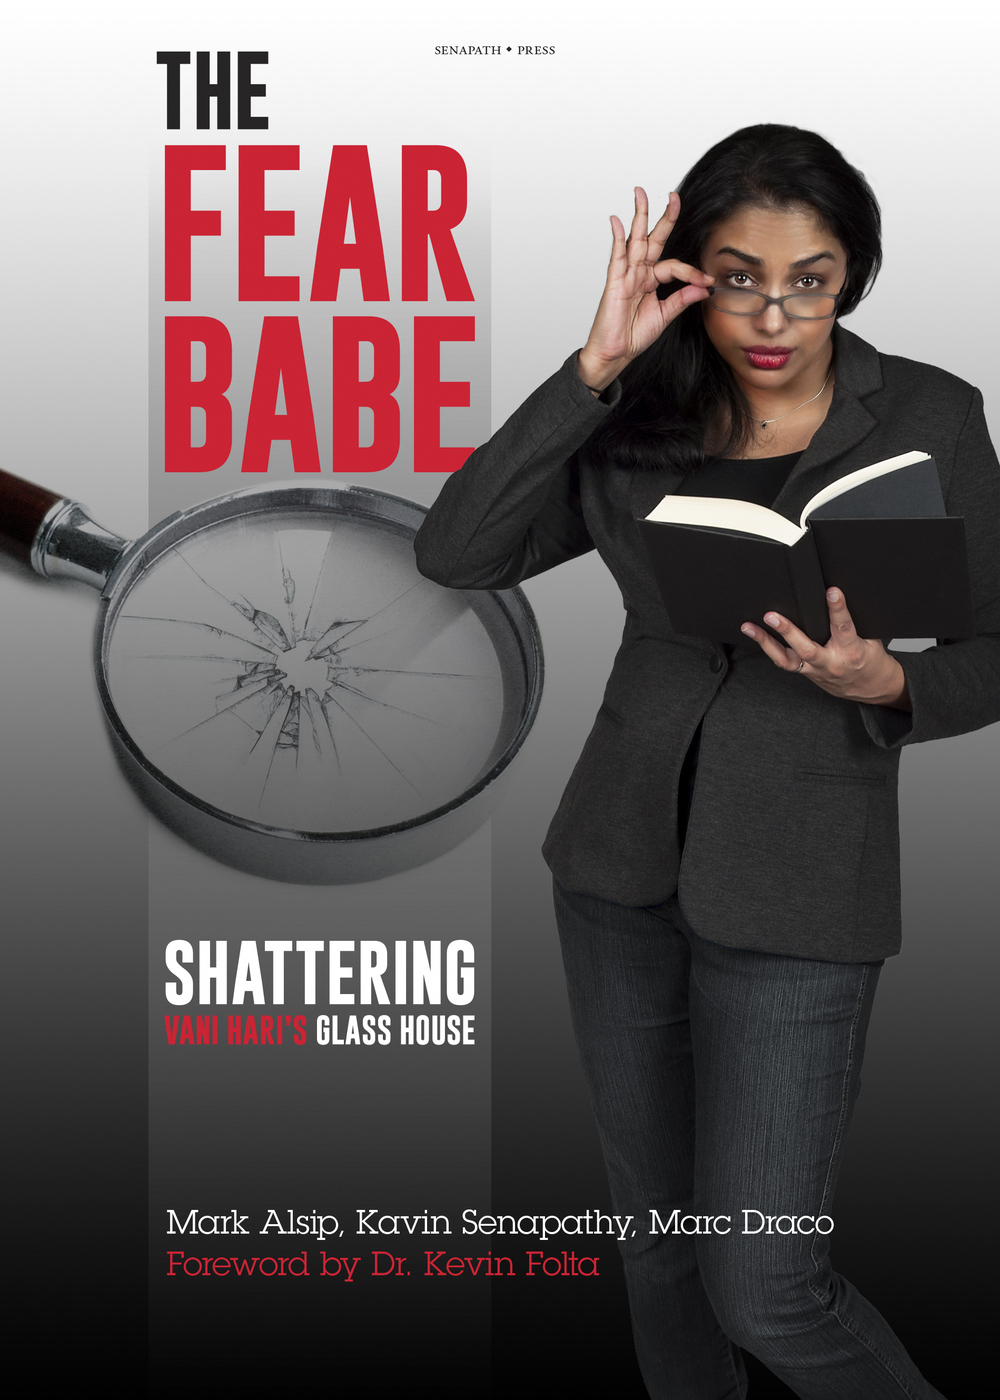 The Fear Babe, Book Cover